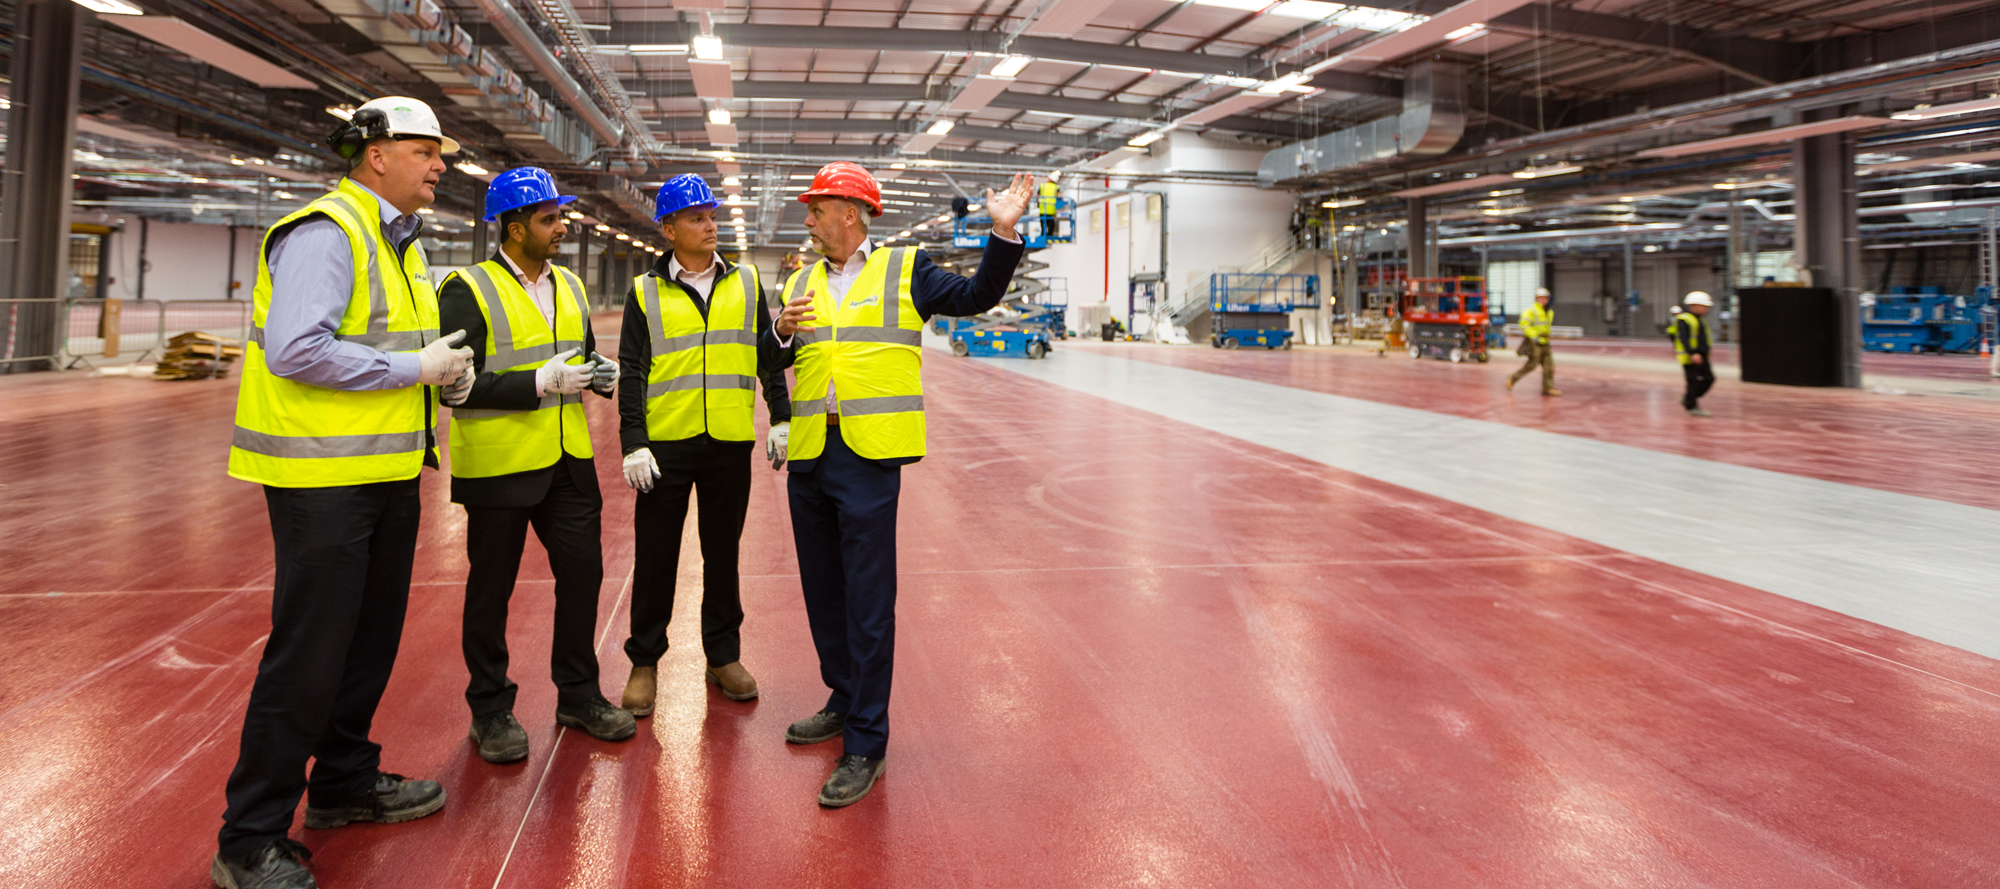 Inside the new Airedale UK facility